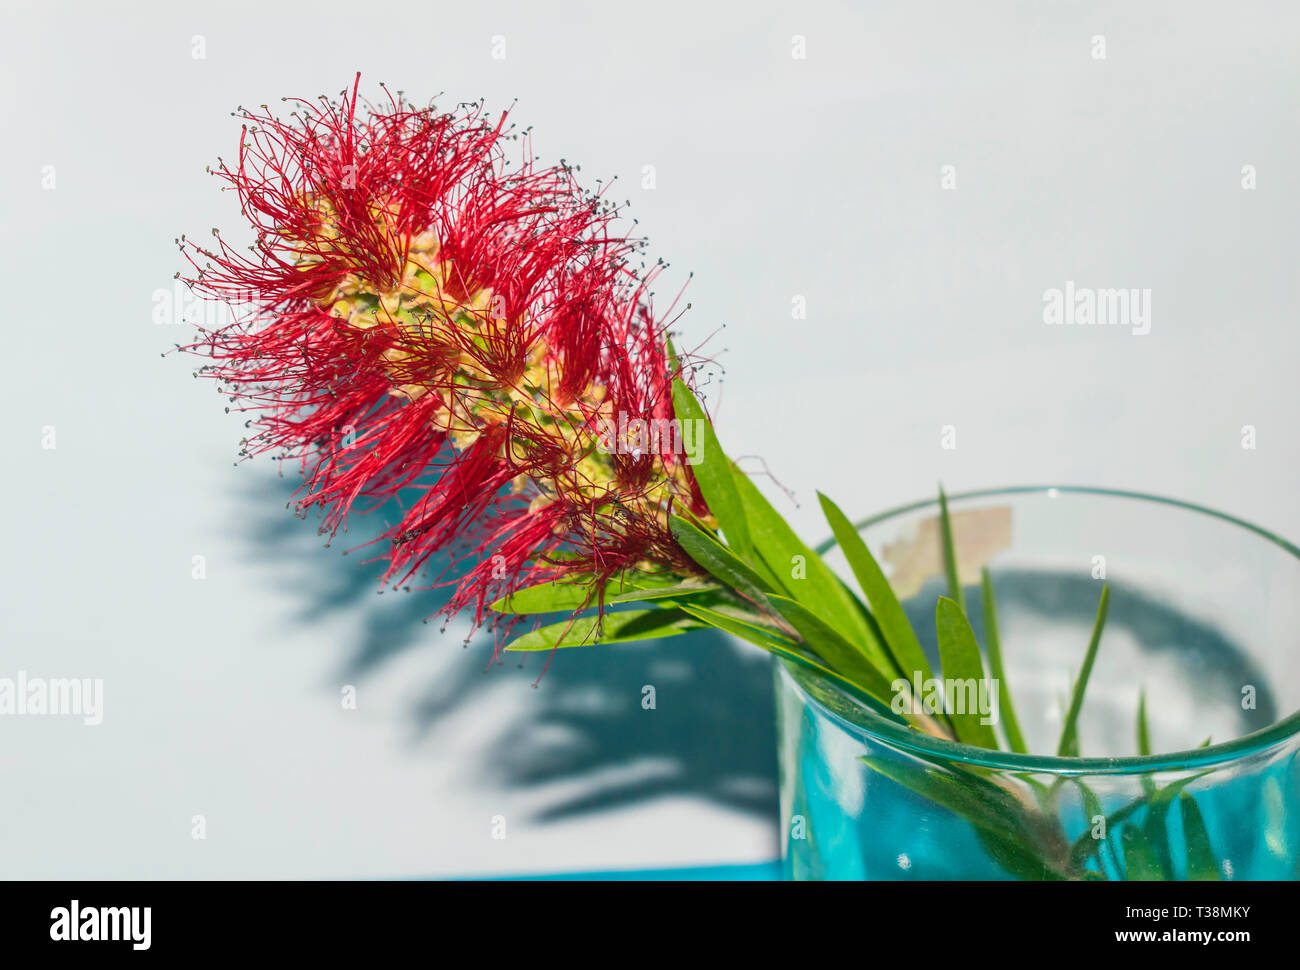 closeup of red beautiful callistemon flower,bottle brush plant in a glass. Stock Photo